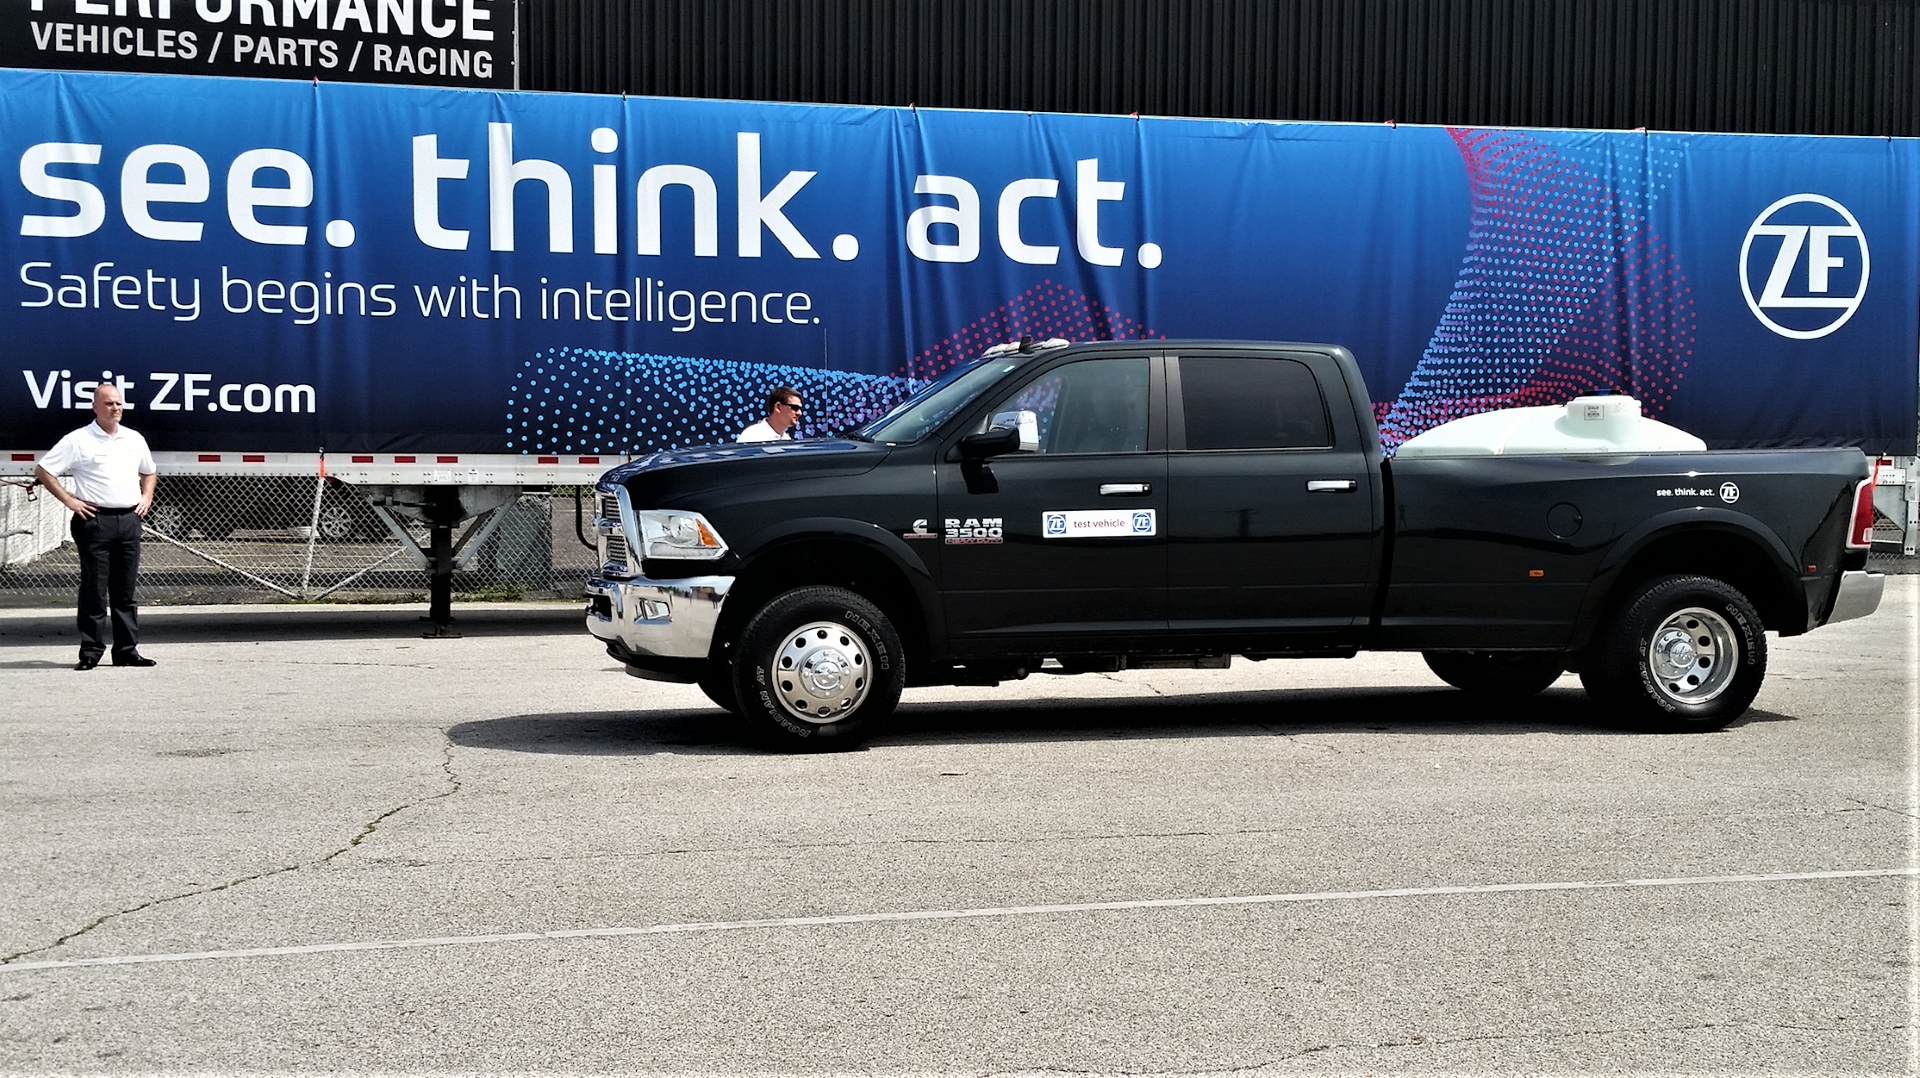 RAM's new 3500 with increased power and better fuel economy